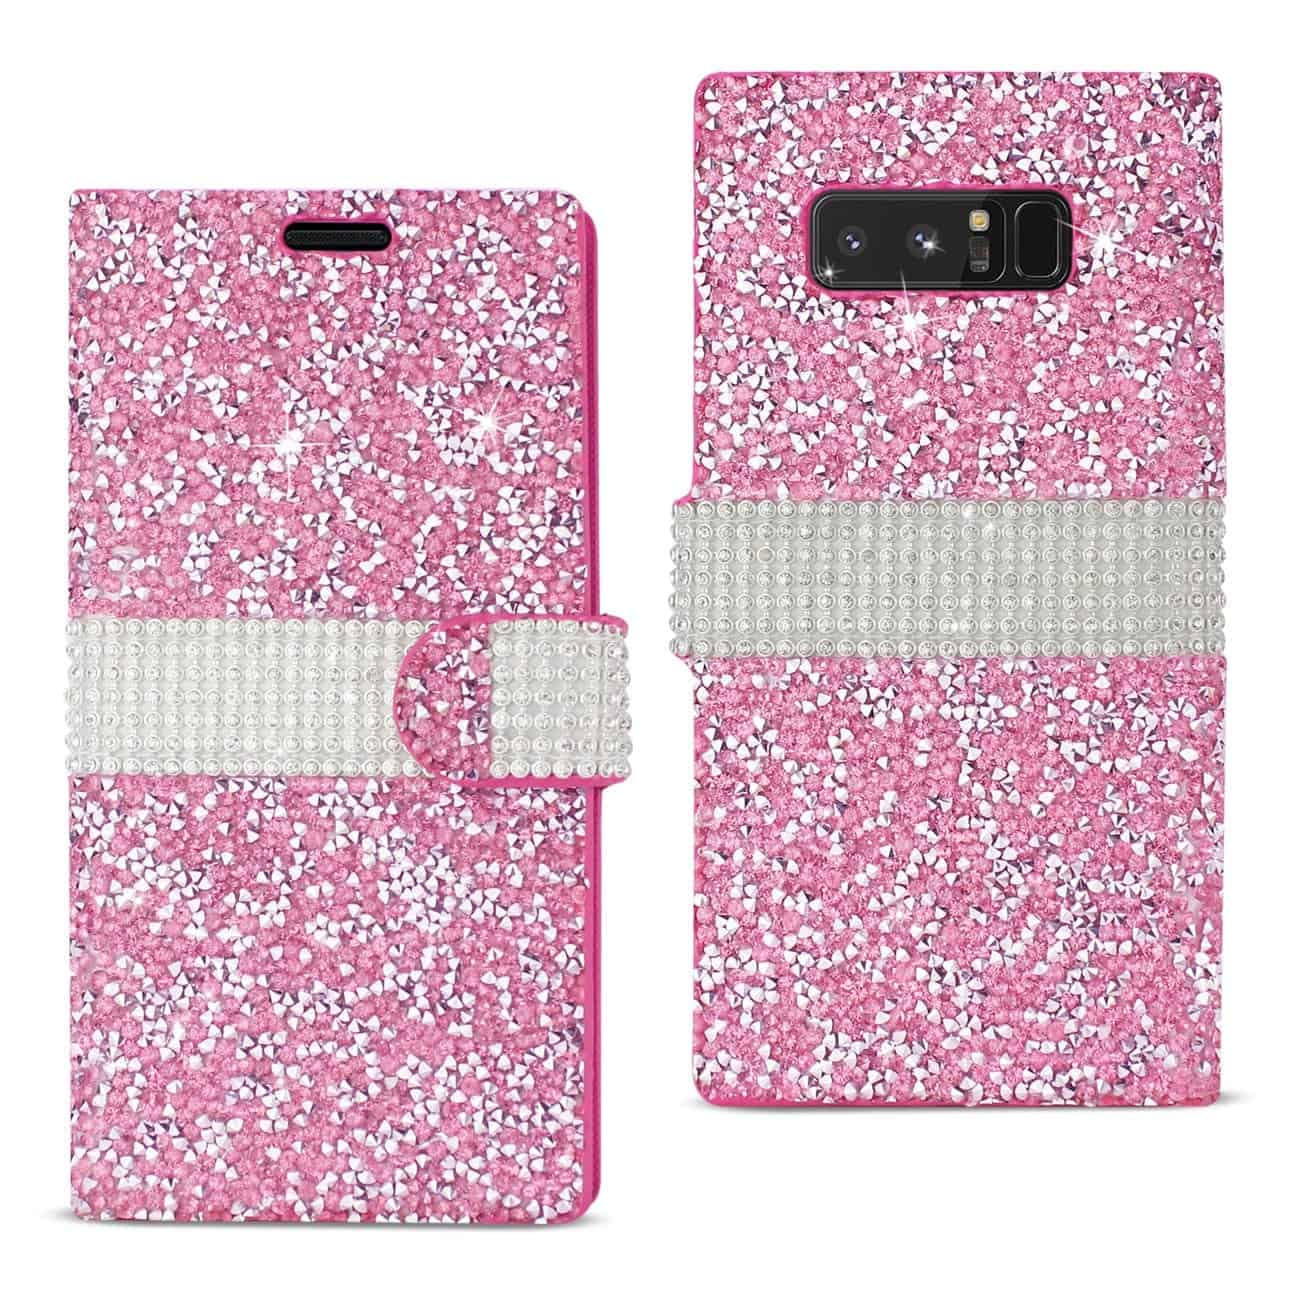 SAMSUNG GALAXY NOTE 8 DIAMOND RHINESTONE WALLET CASE IN PINK